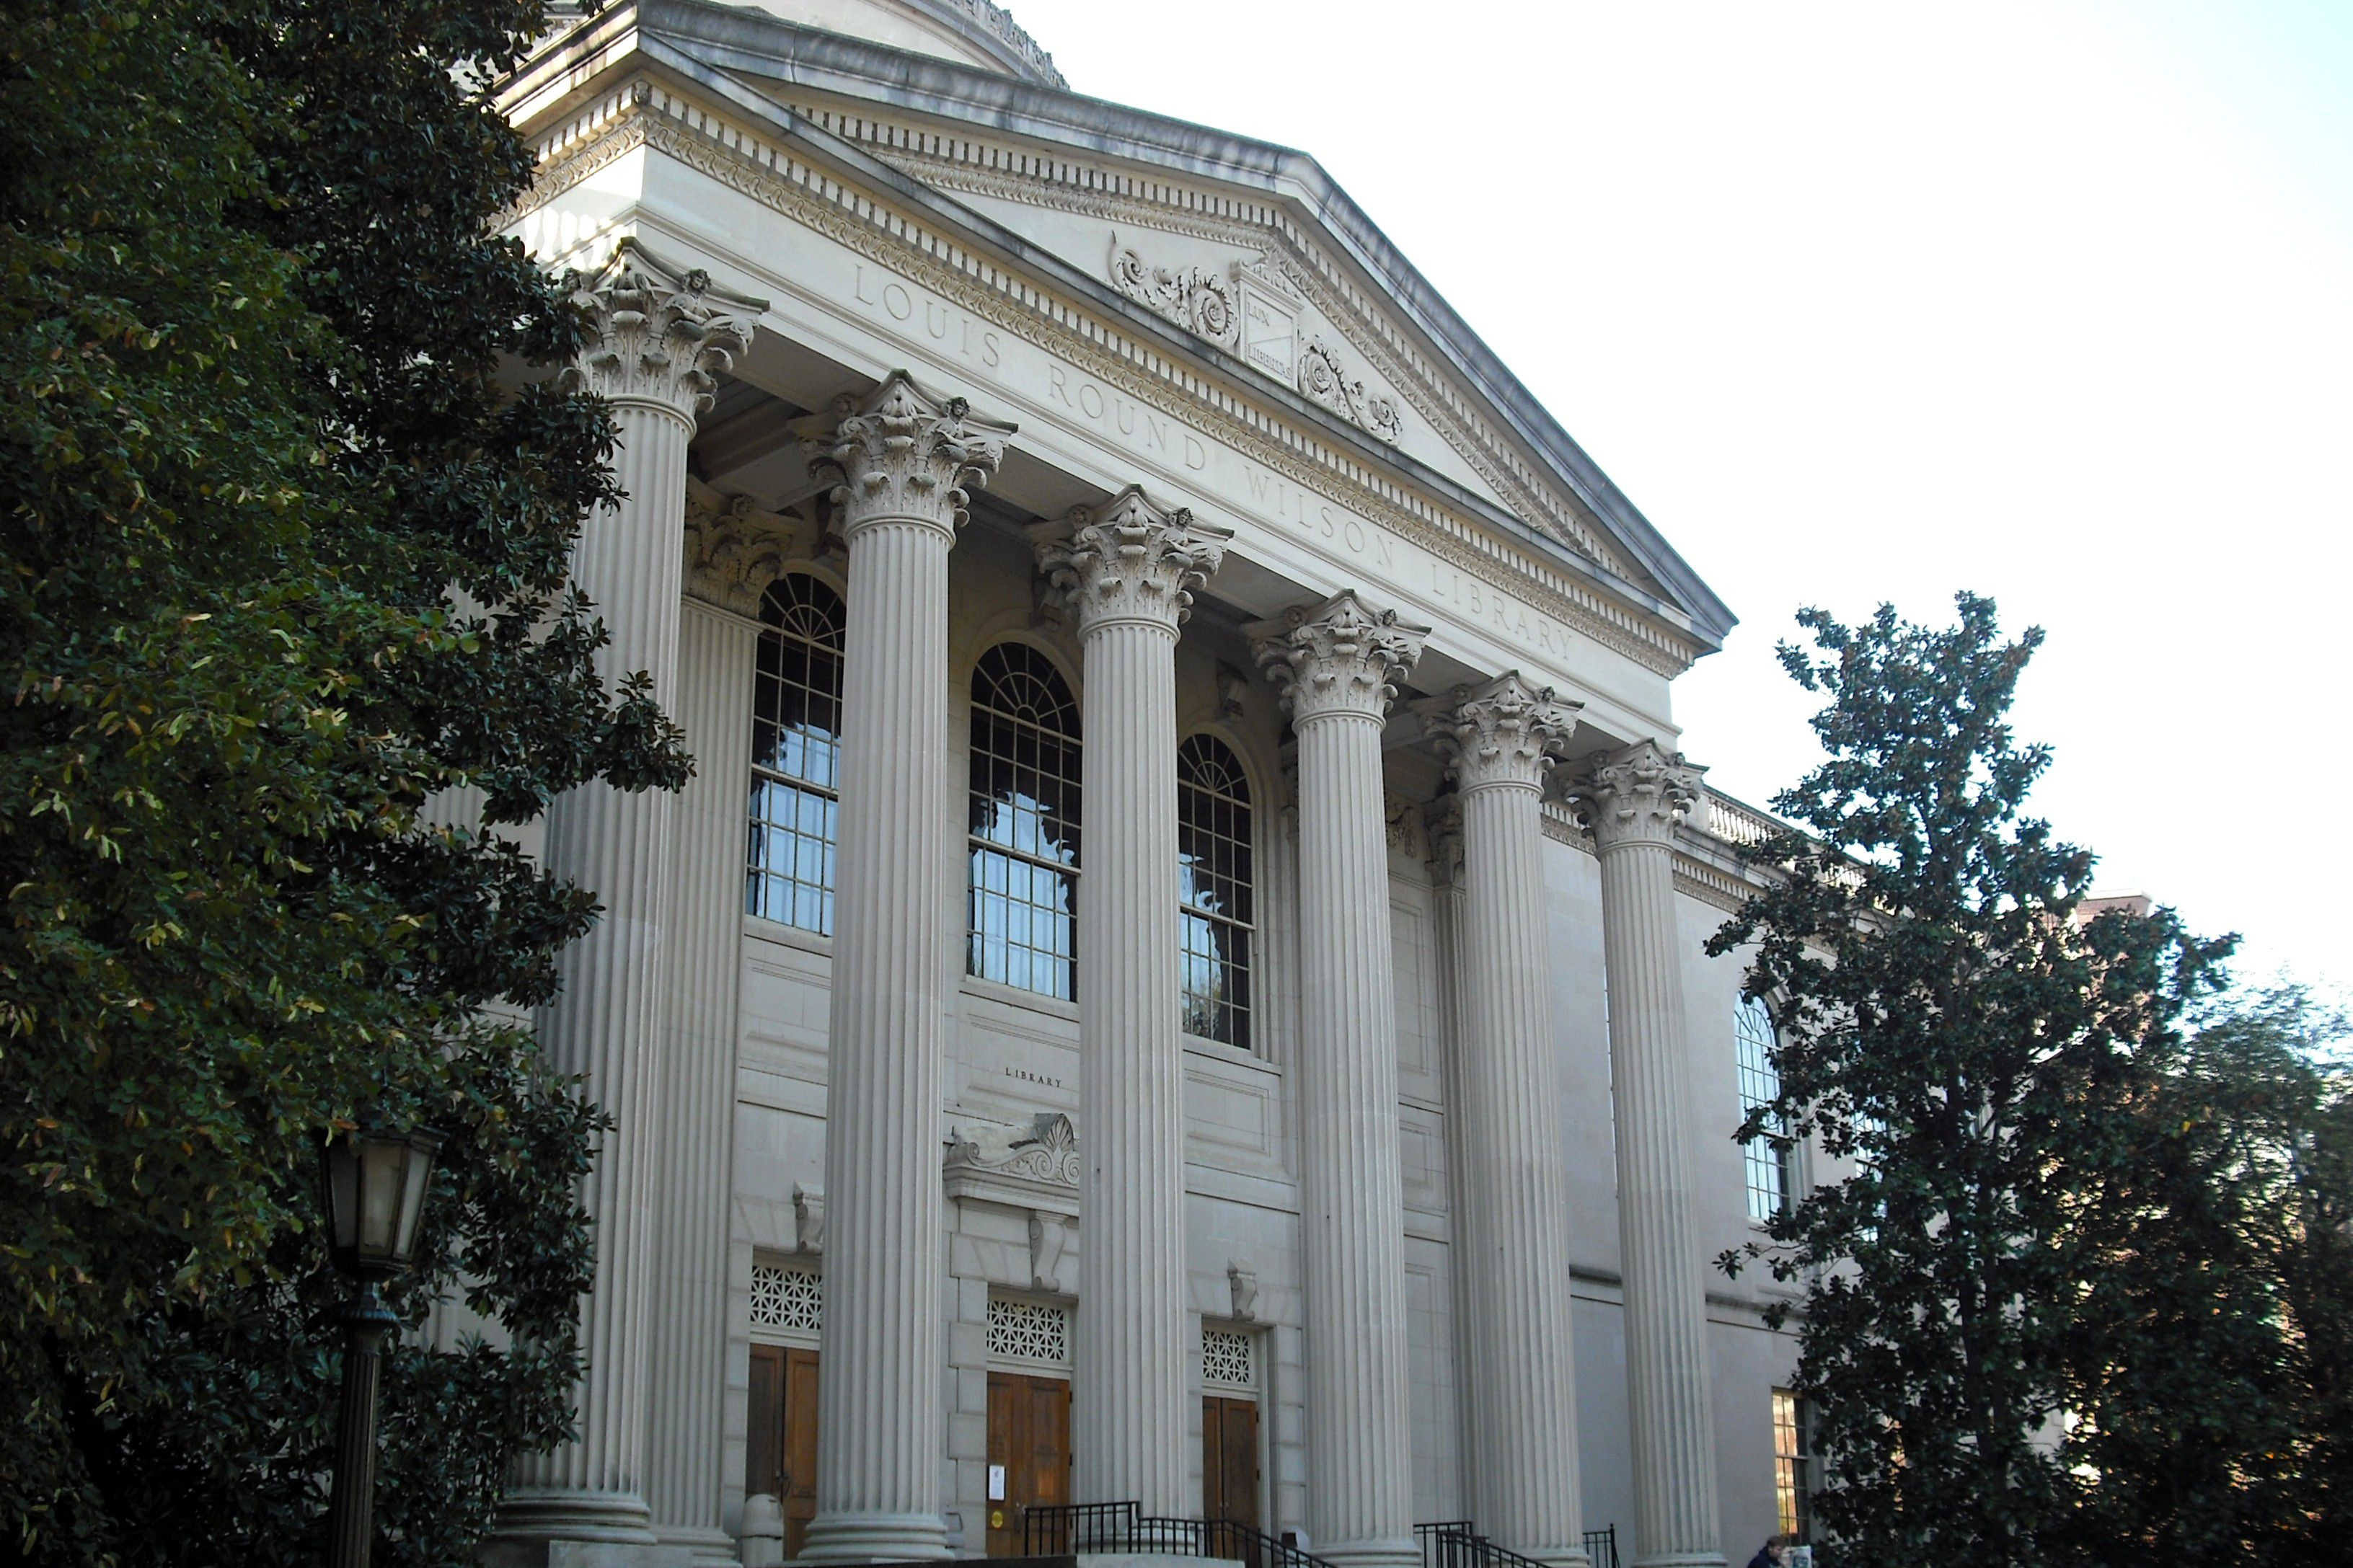 The neoclassical columns fronting Louis Round Wilson Library at UNC Chapel Hill